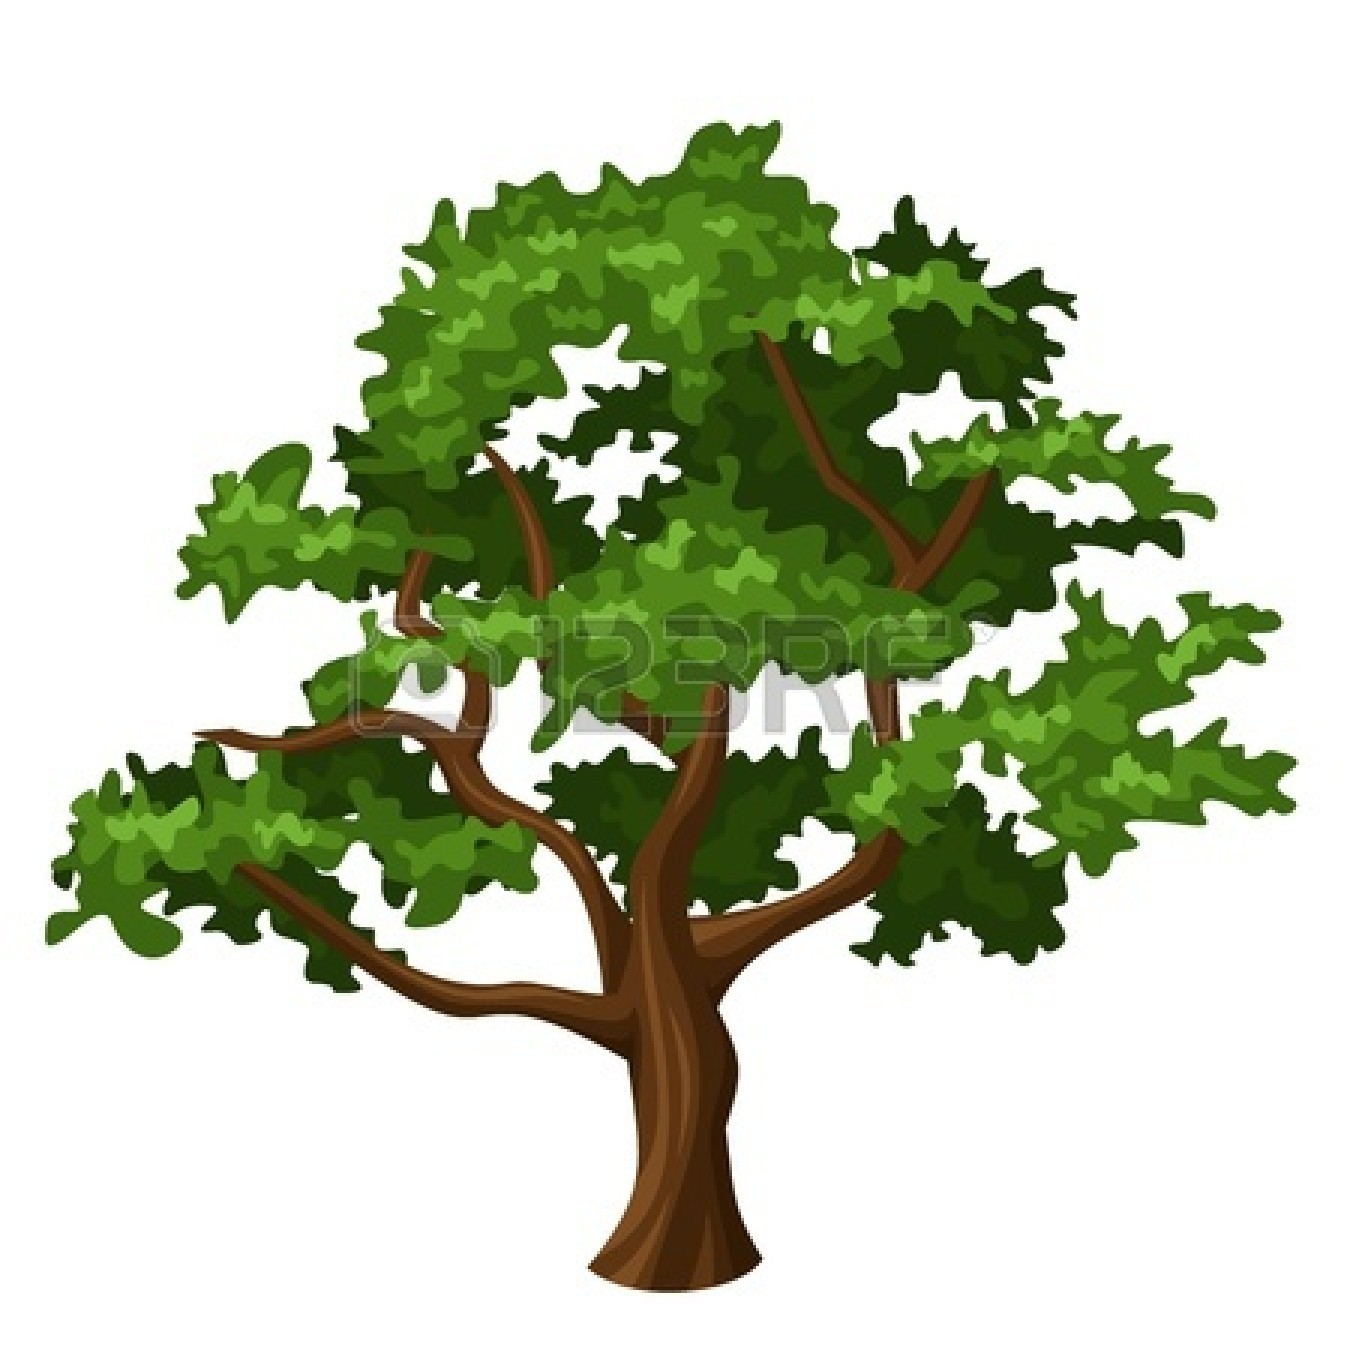 Tree Drawing Clipart at GetDrawings.com | Free for personal use Tree ...